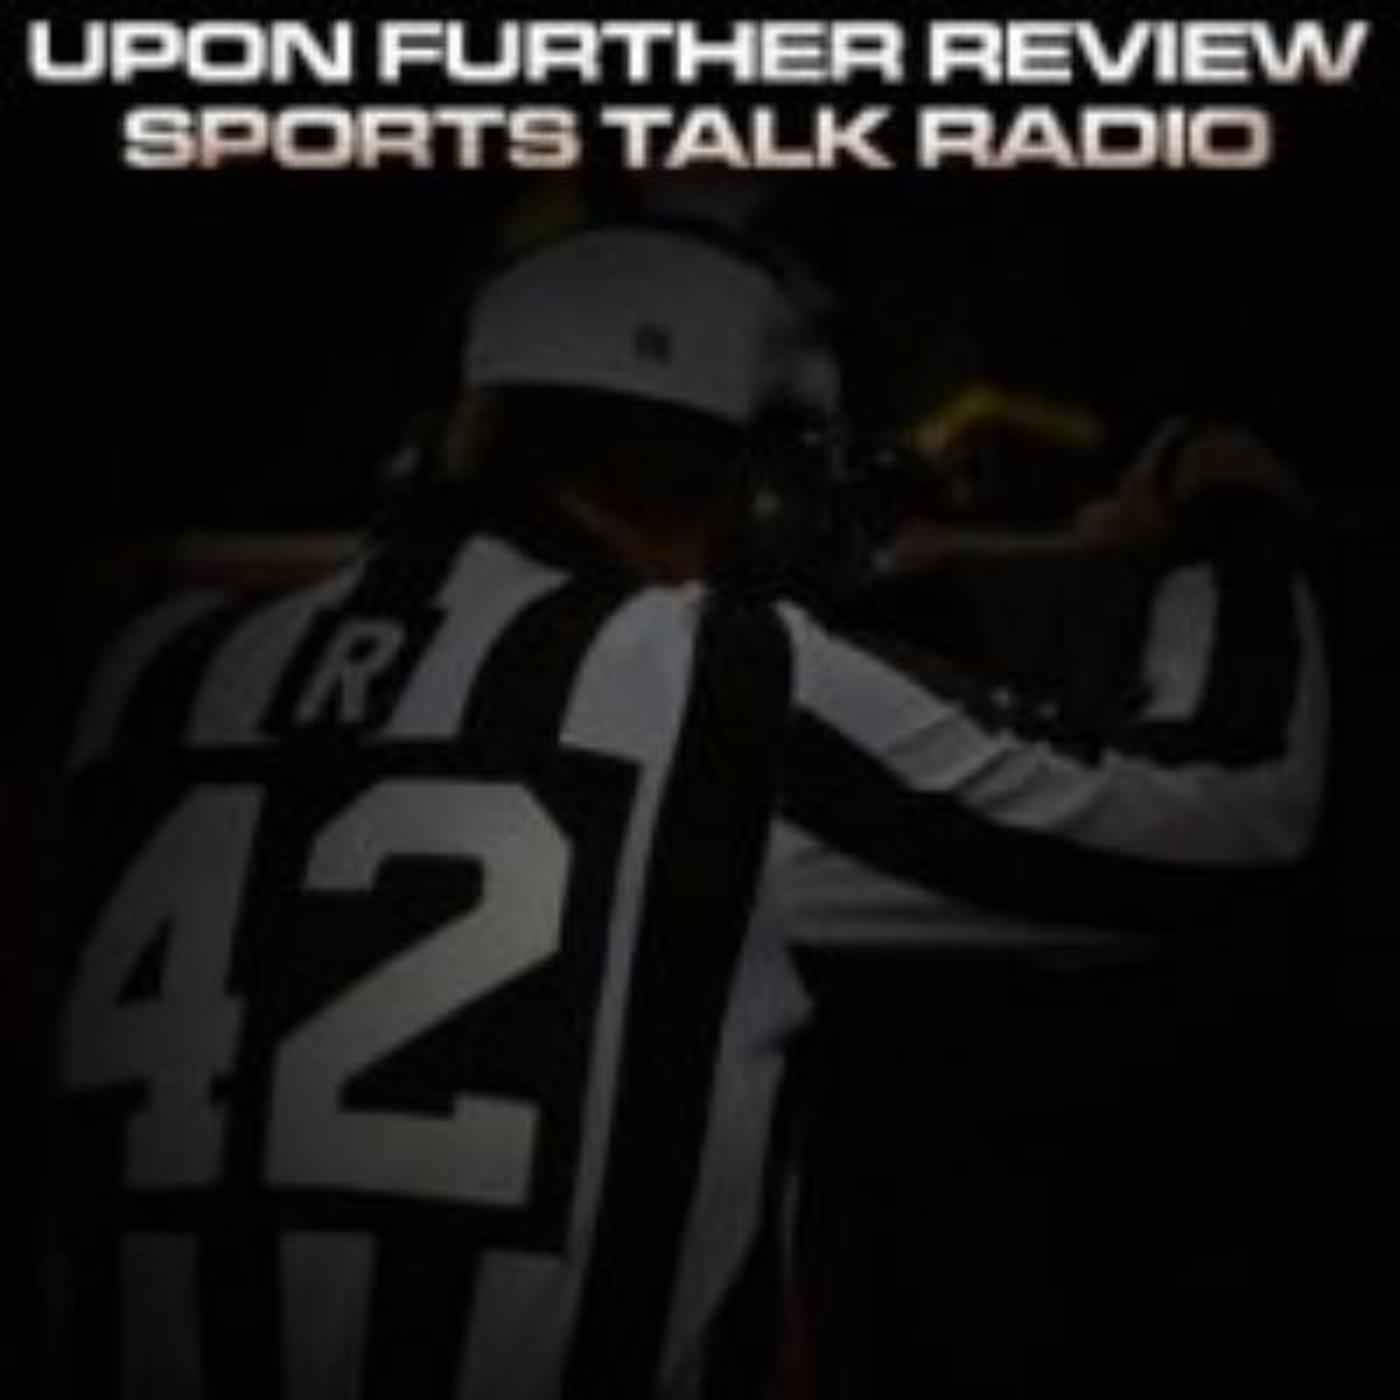 Upon Further Review